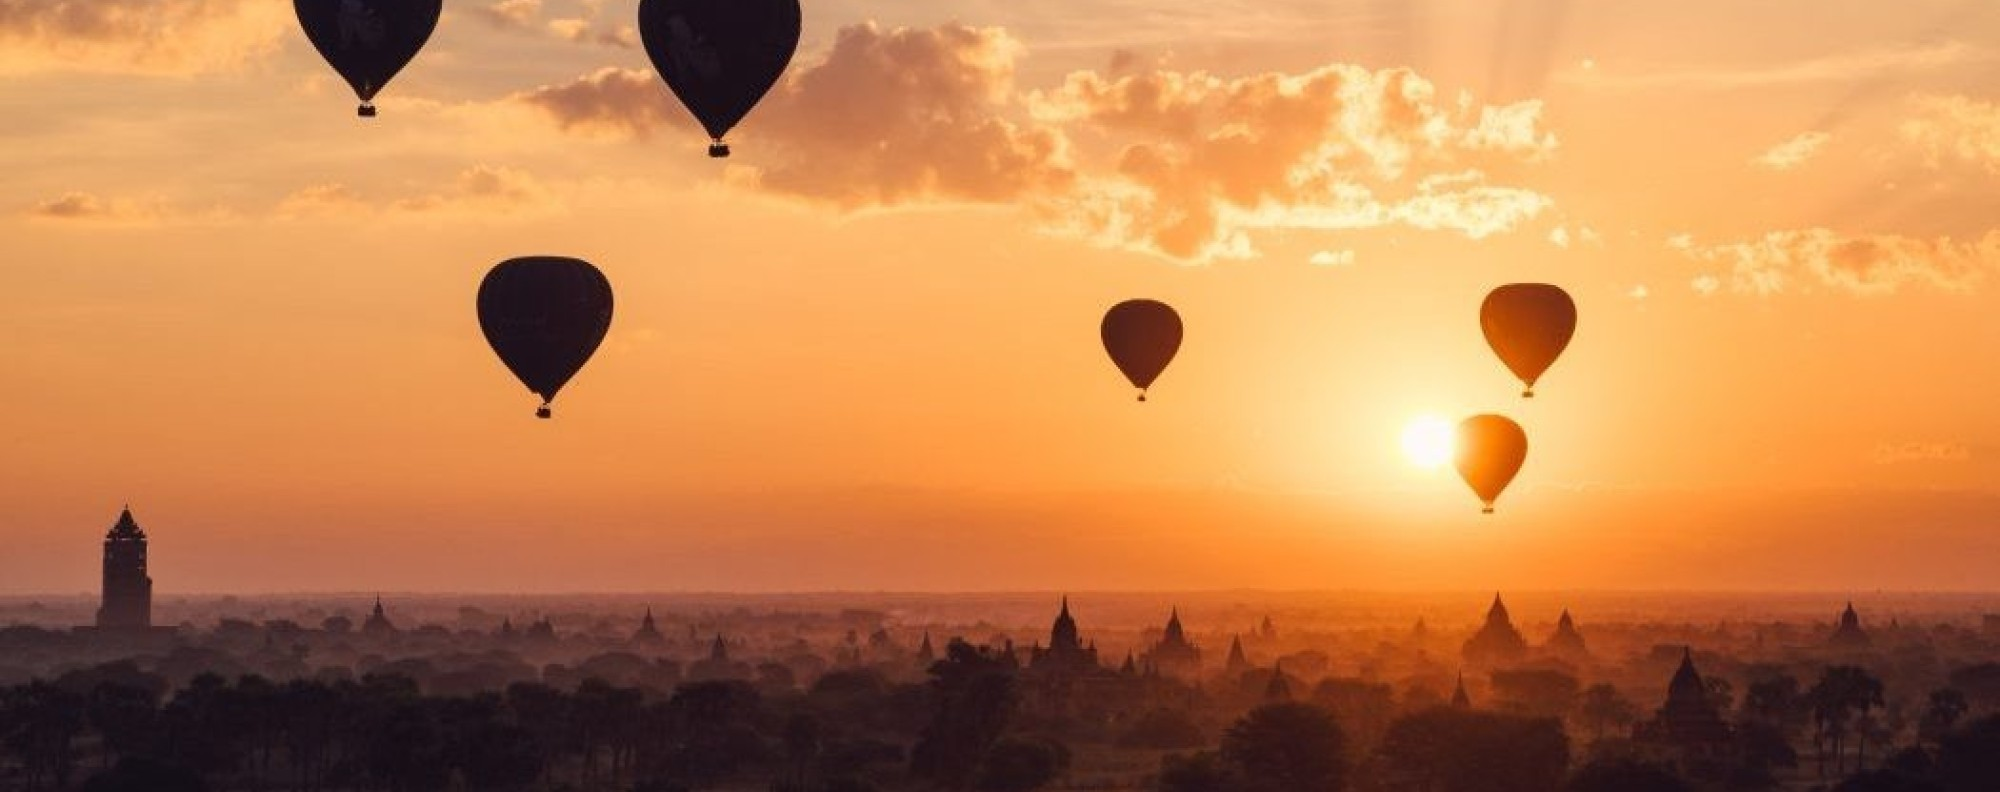 Hot-air balloons float in the sky during a stunning sunset above the ancient city of Bagan in Myanmar. Photo: Joel Sparks/Unsplash